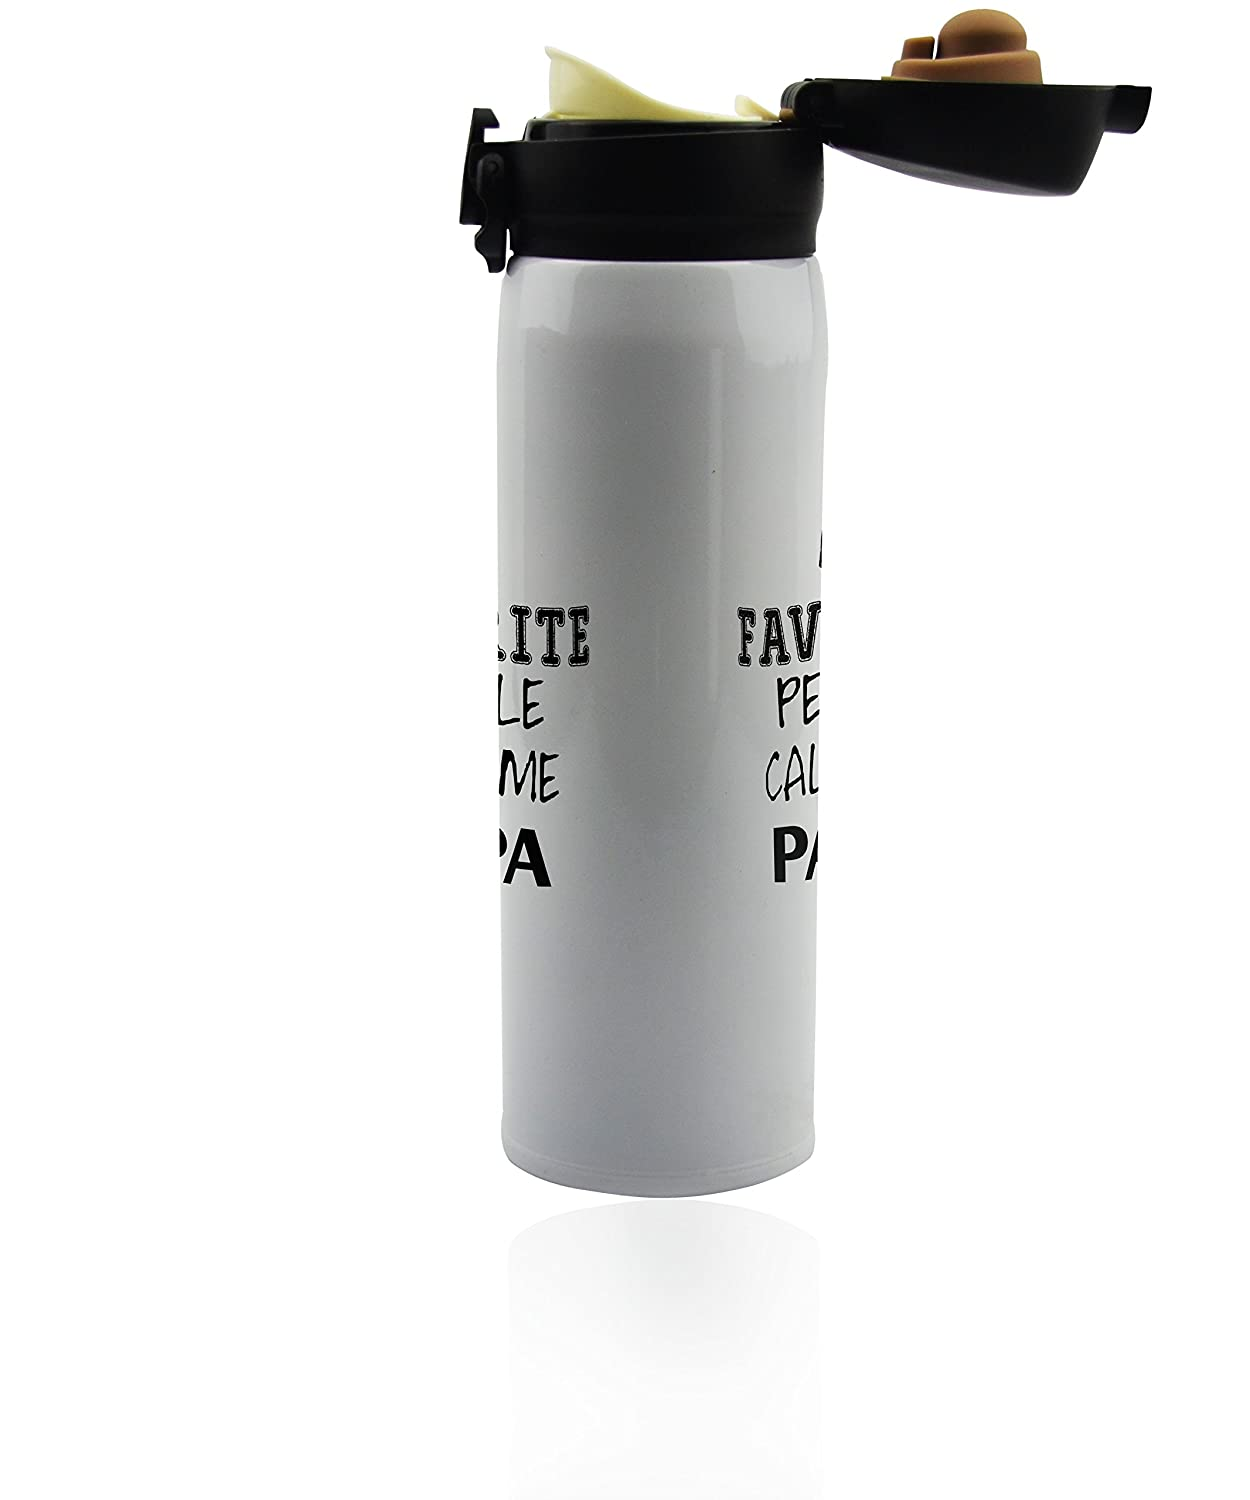 Stainless steel insulated thermo bottle 500 ml Double-walled coffee gifts. 17 oz. Travel tumbler mug for hot or cold beverage fathers vacuum flask Papa thermos Fathers day gift idea